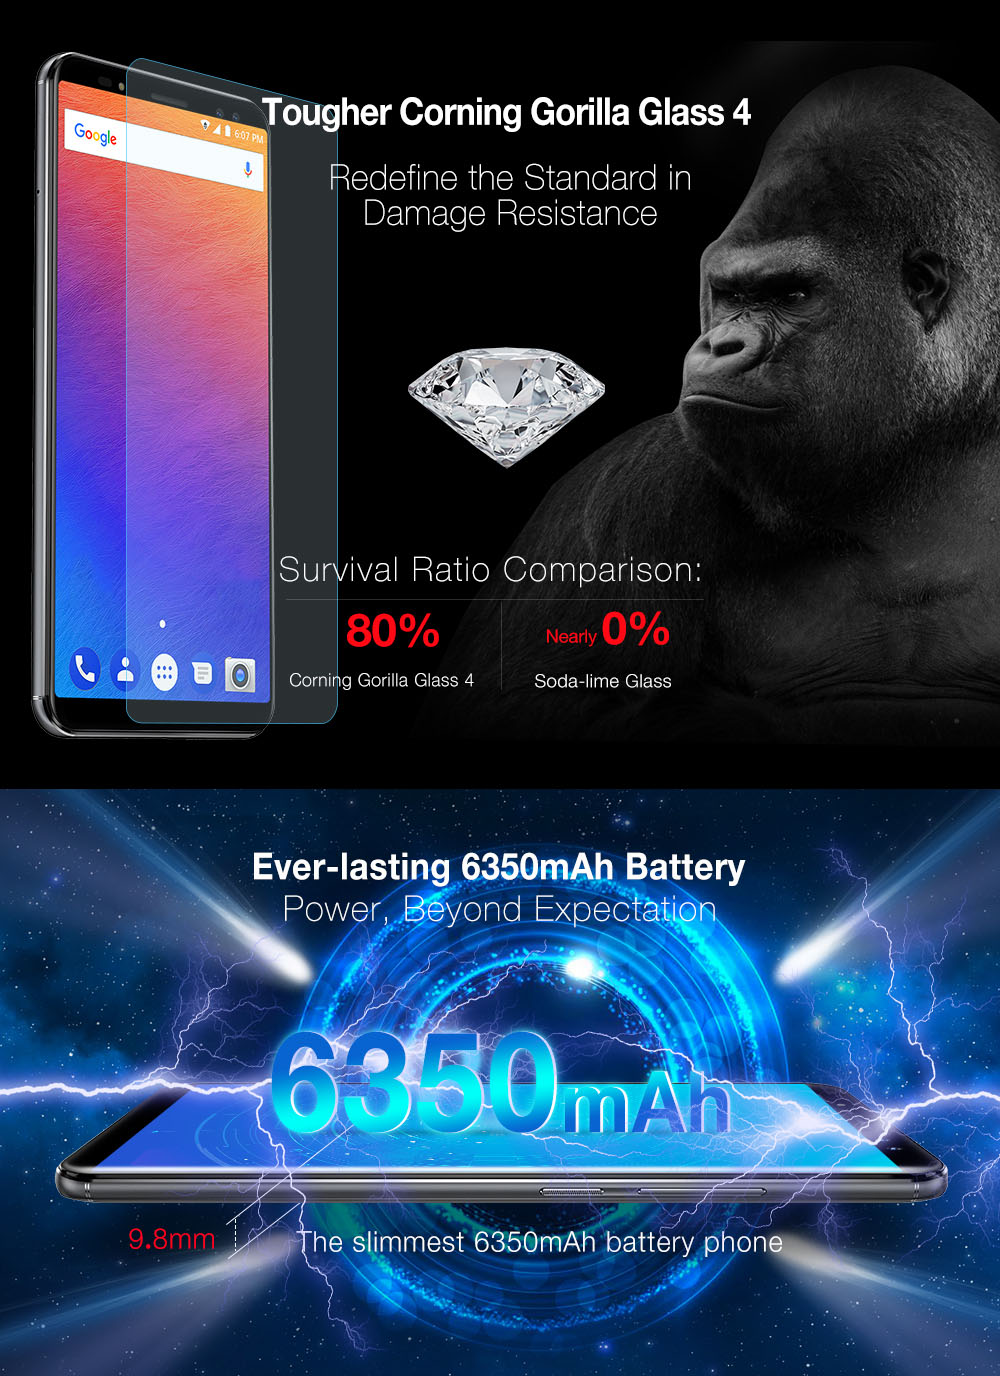 Ulefone Power 3S 4G Phablet Android 7.1 6.0 inch MTK6763 Octa Core 2.0GHz 4GB RAM 64GB ROM Quad Cameras Type-C Corning Gorilla Glass 4 Screen Face ID